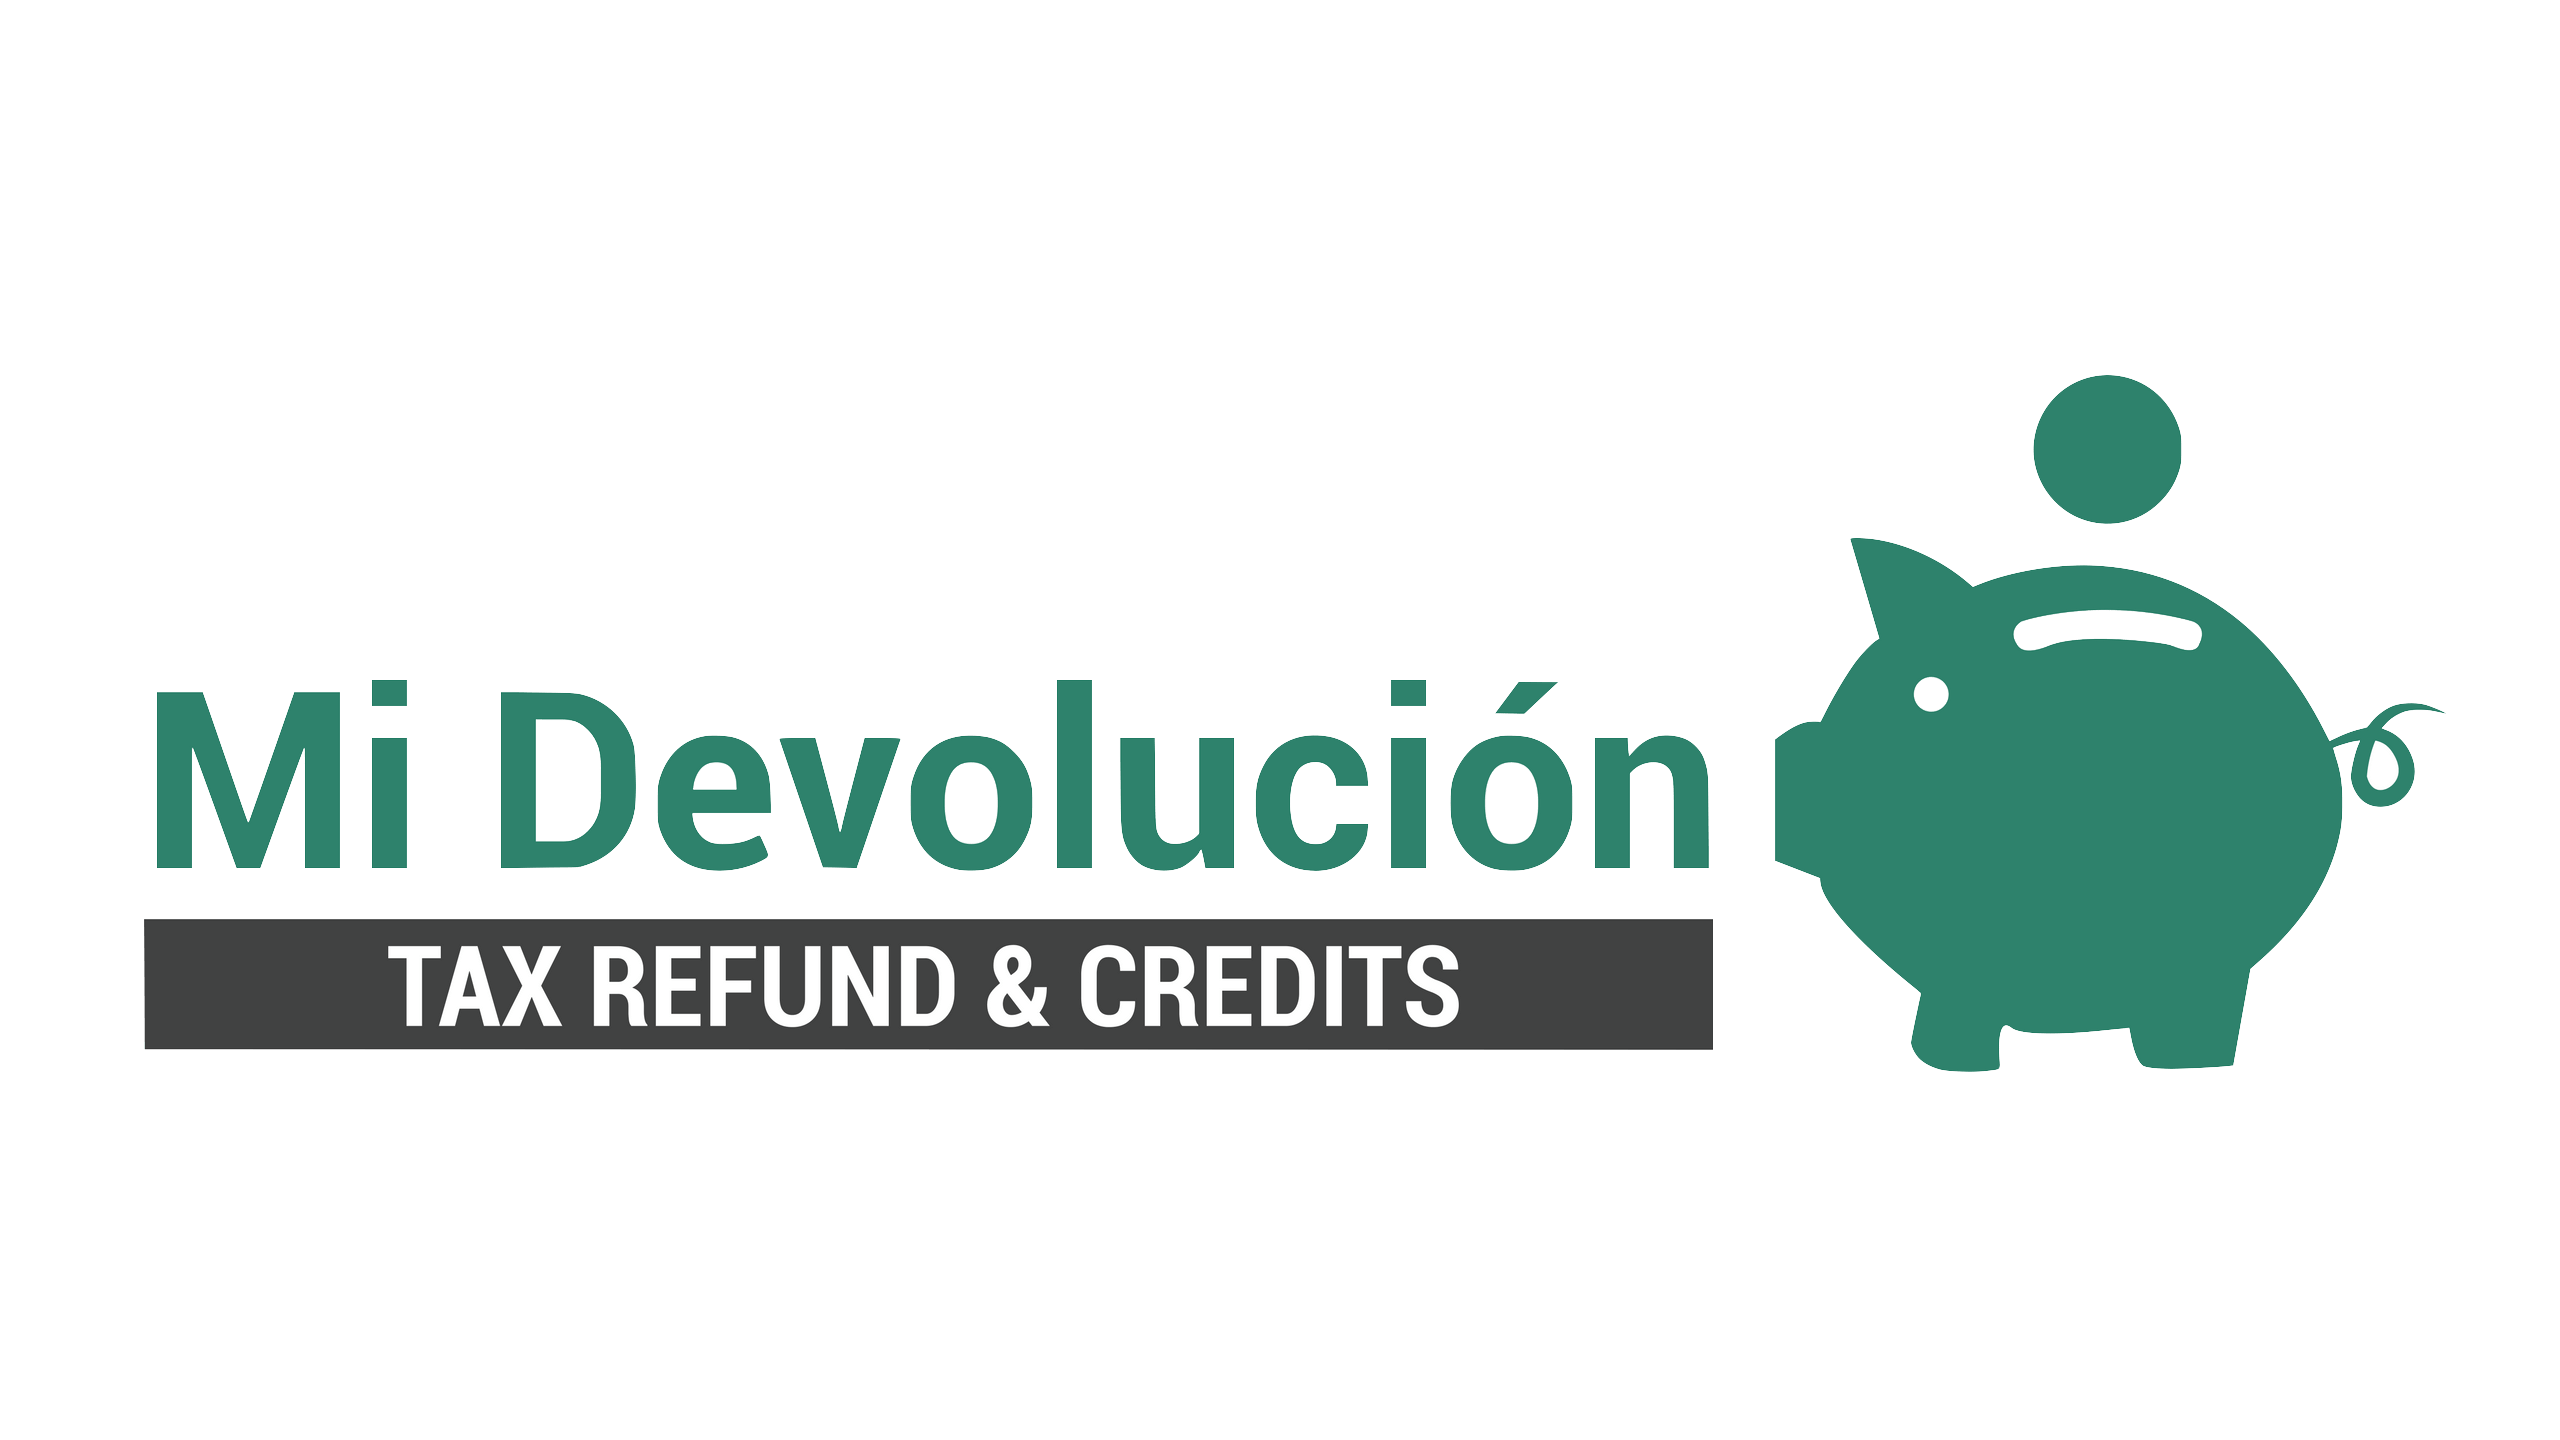 Mi Devolucion Tax Refund & Credits Logo